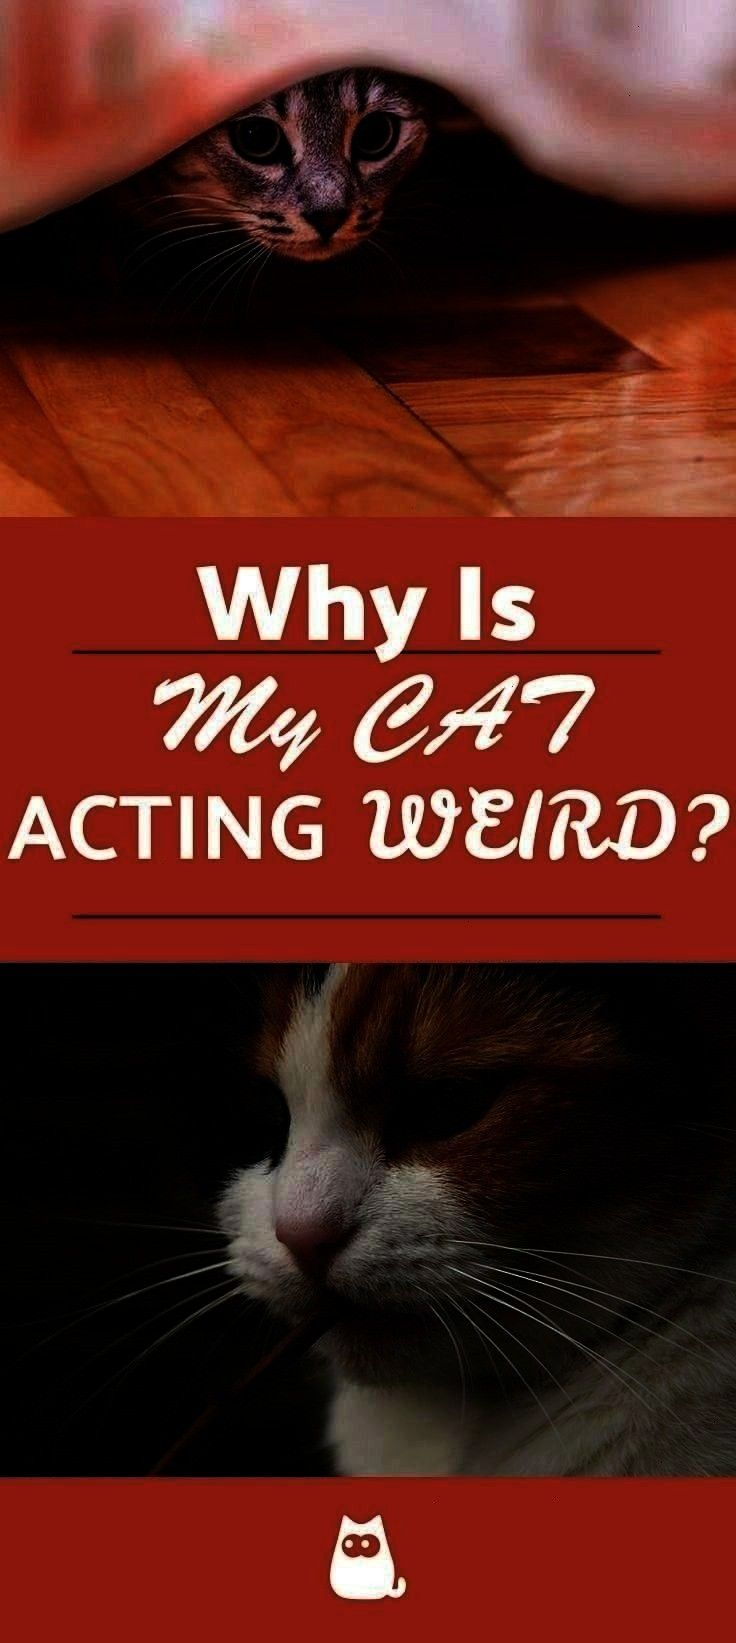 Therereasons Hidingweird Felineacts Mannerisms Normalcat Couldyour Isntthere Isntyour Behavior Tocataw Illness Reasons Strange Changes Actingther 2020